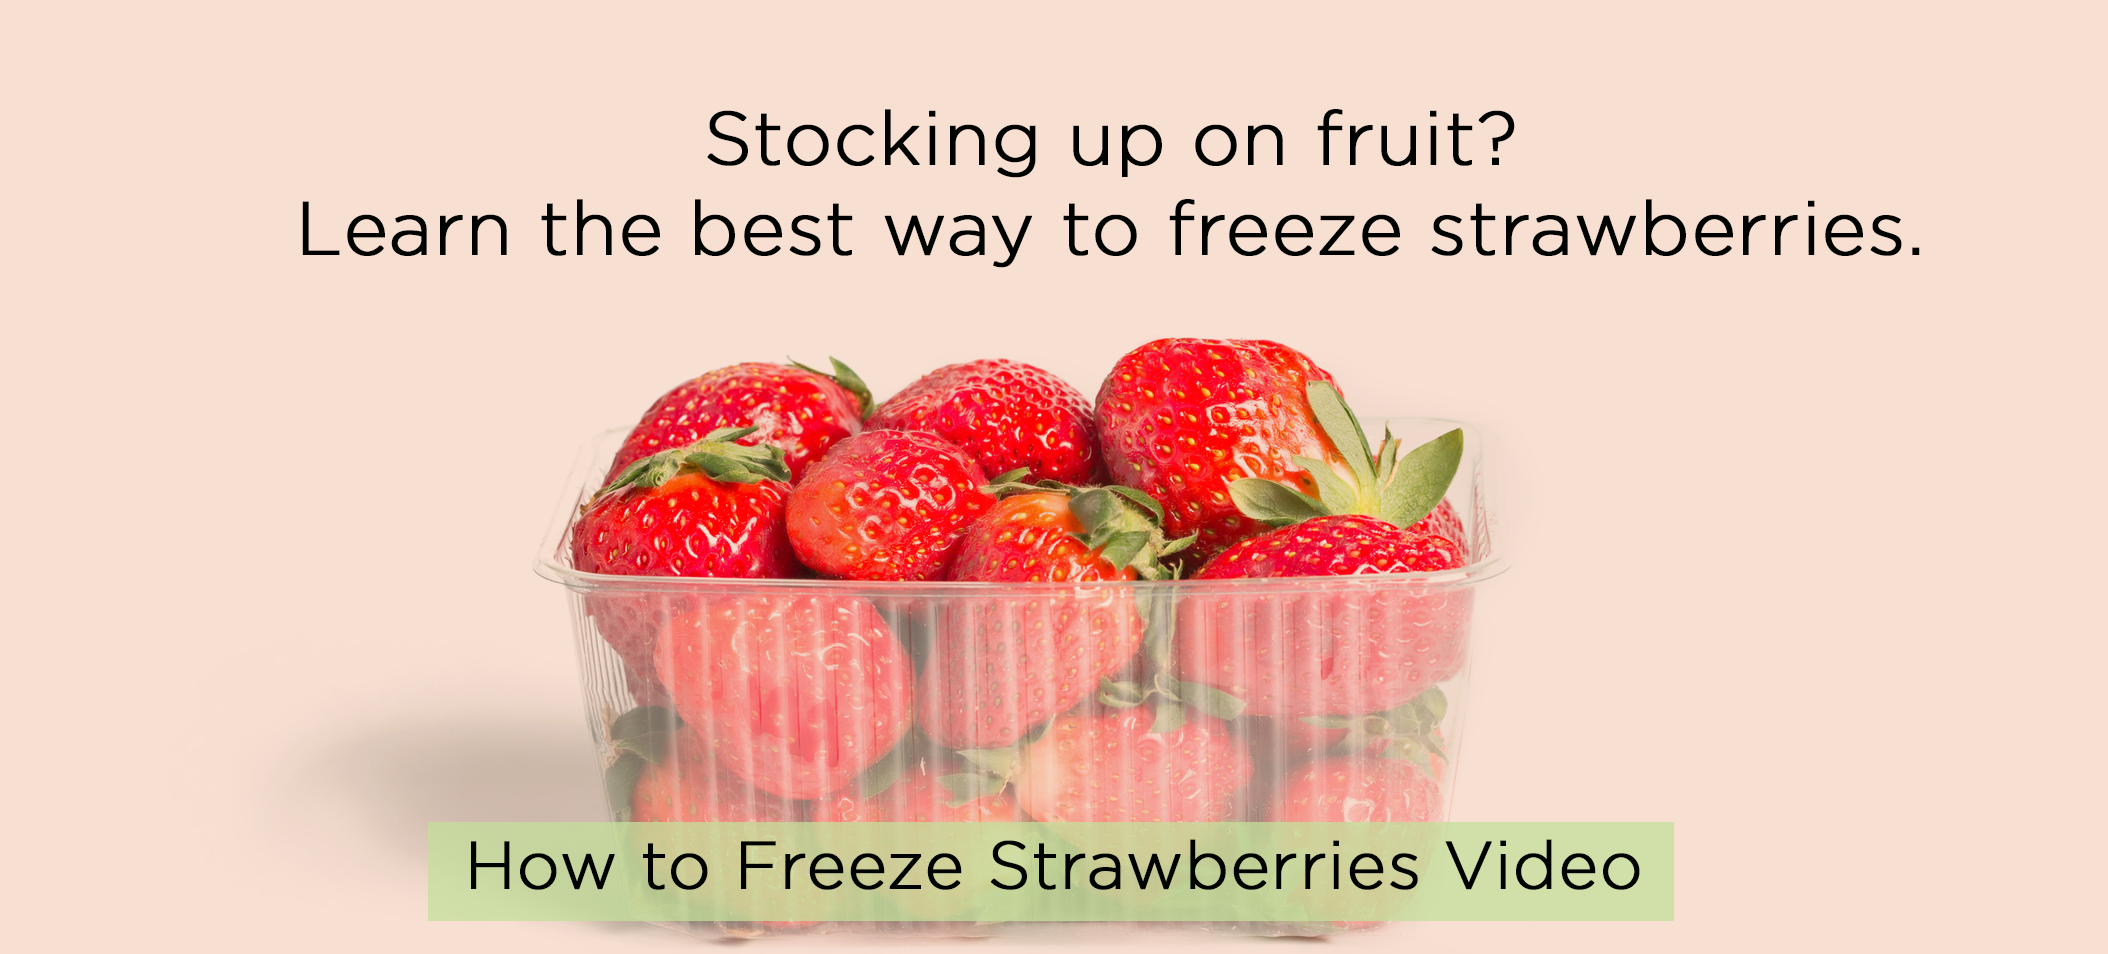 Stocking up on fruit? How to freeze strawberries video